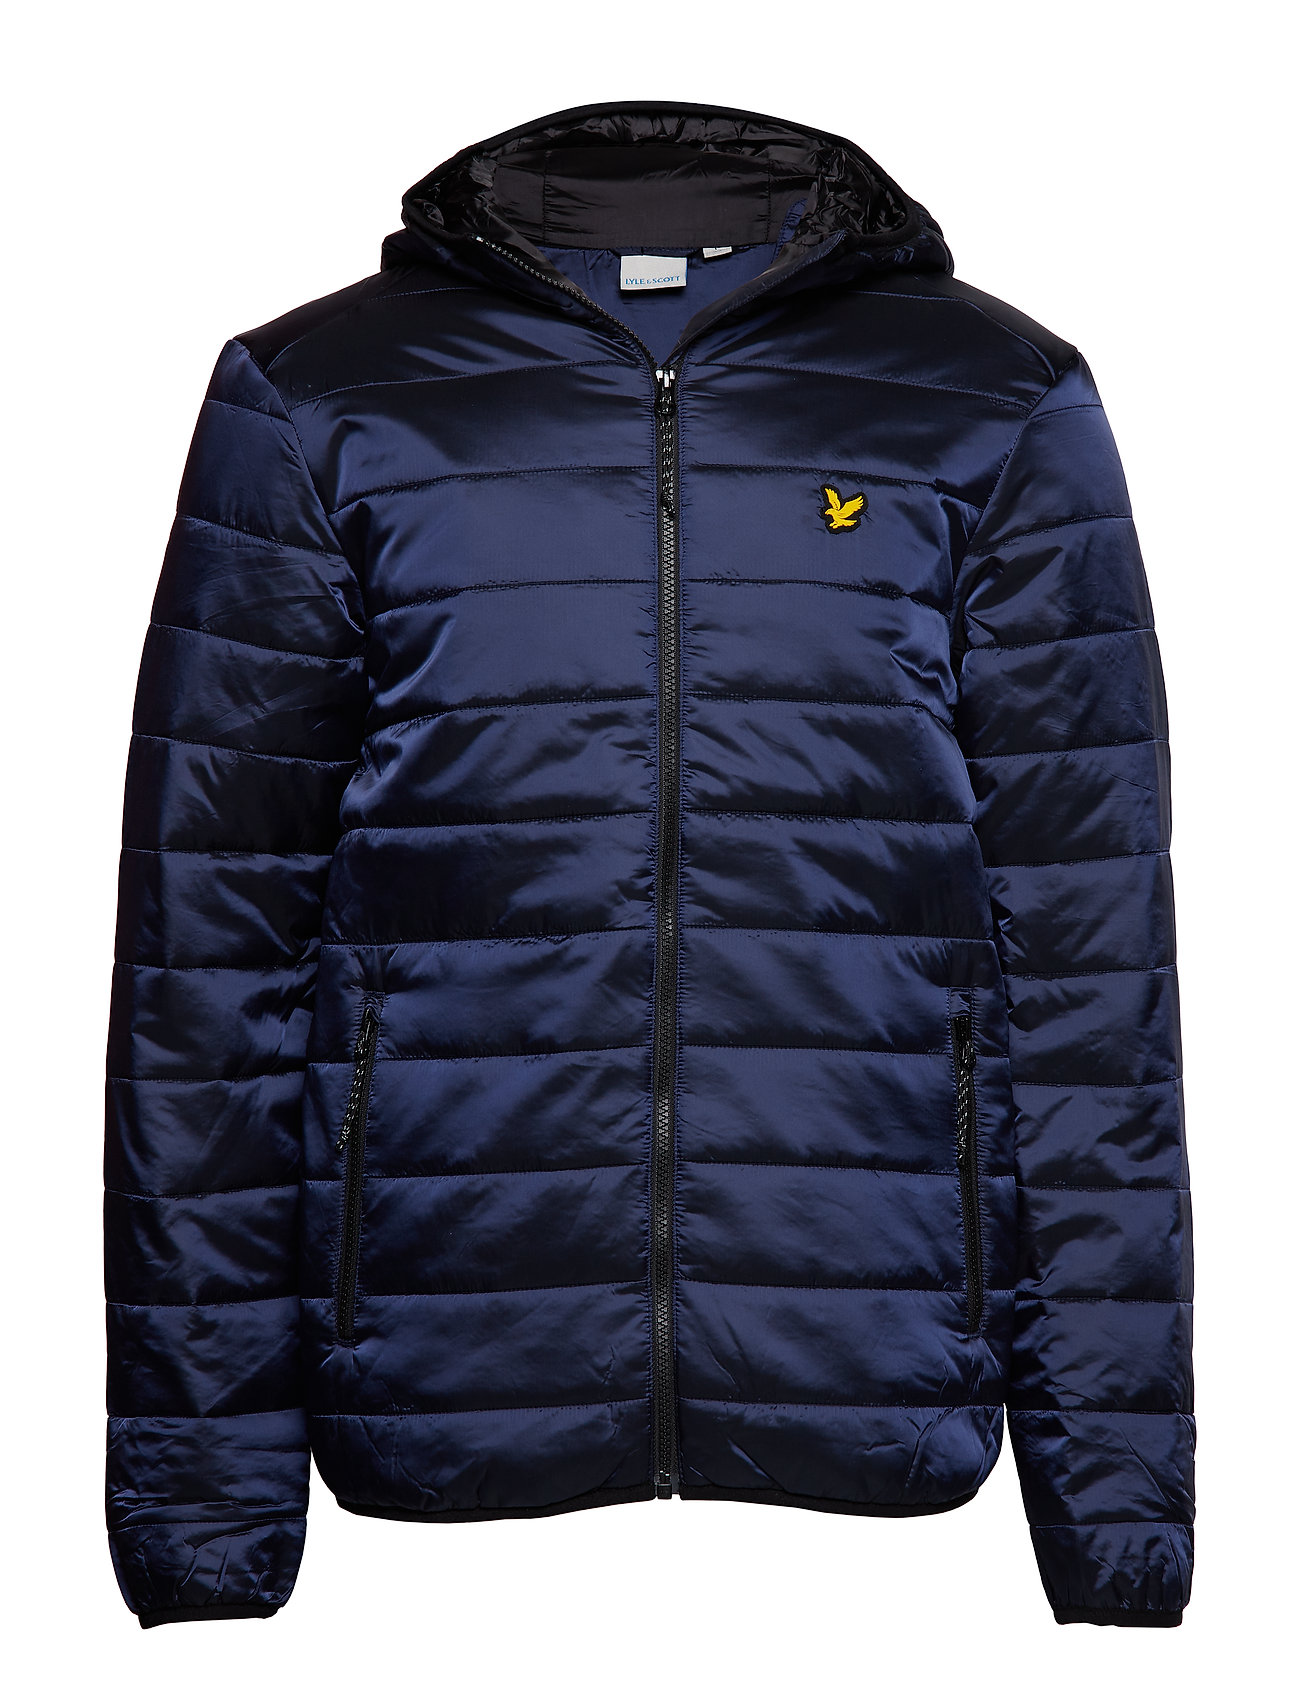 Lyle & Scott Sport Cooke Jacket : Insulated Foil Jacket with Hood - NAVY